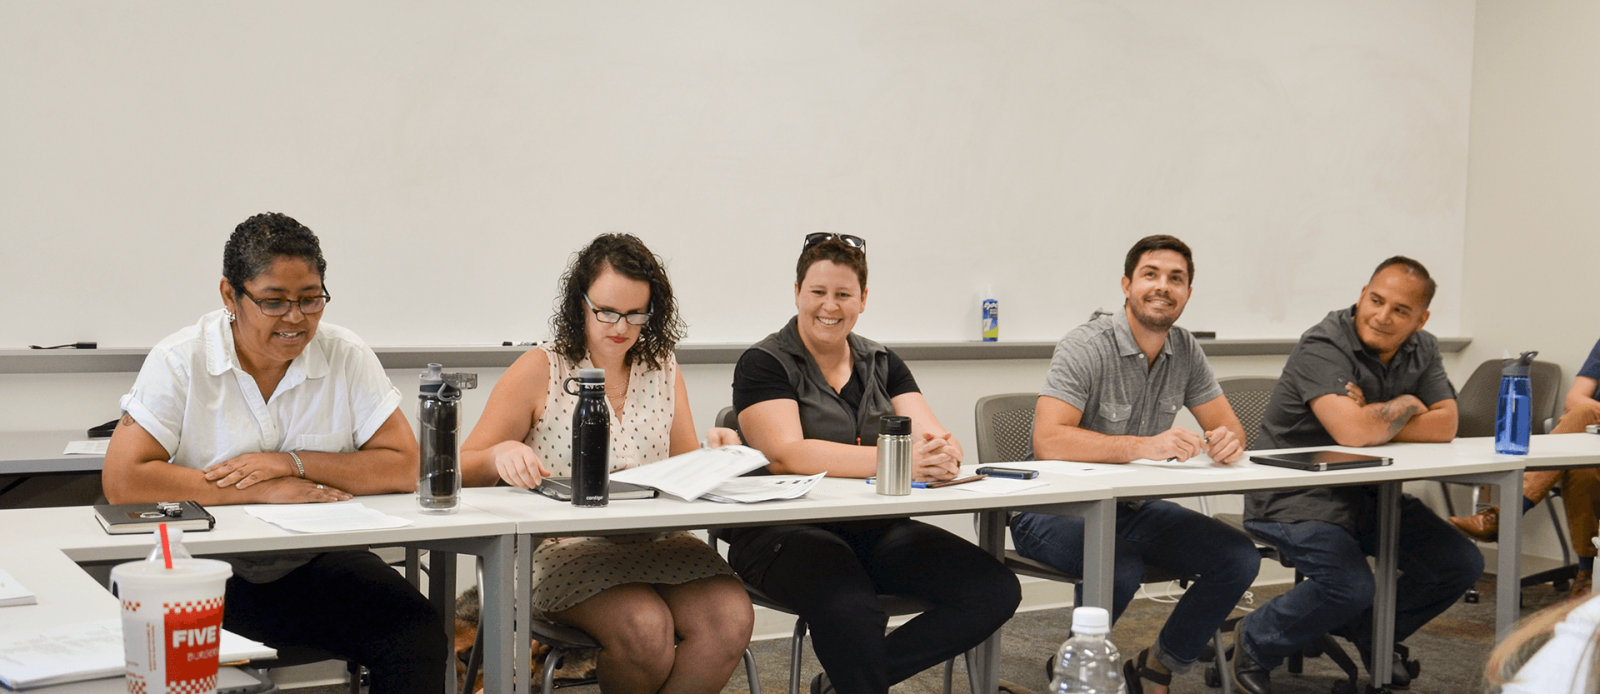 Ph.D. students Nicole Green and Matt Whitaker participate in a panel with alums Linda Garcia Merchant, Erin Bertram, and Angel Garcia